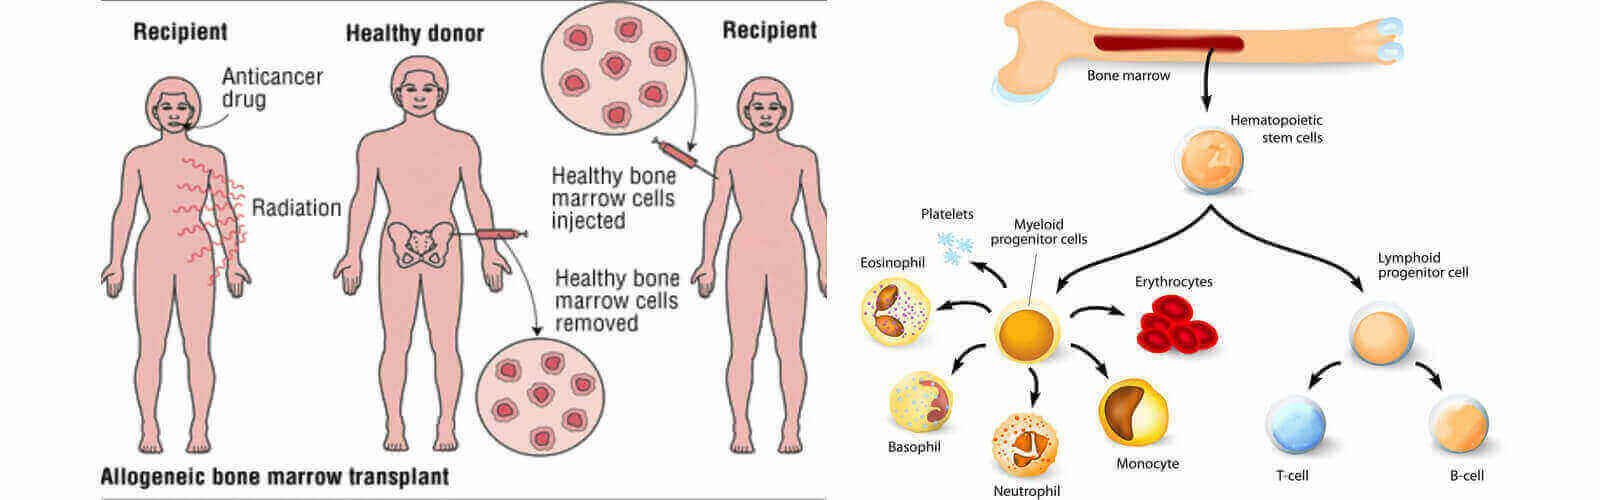 Different Types of Bone Marrow Transplant